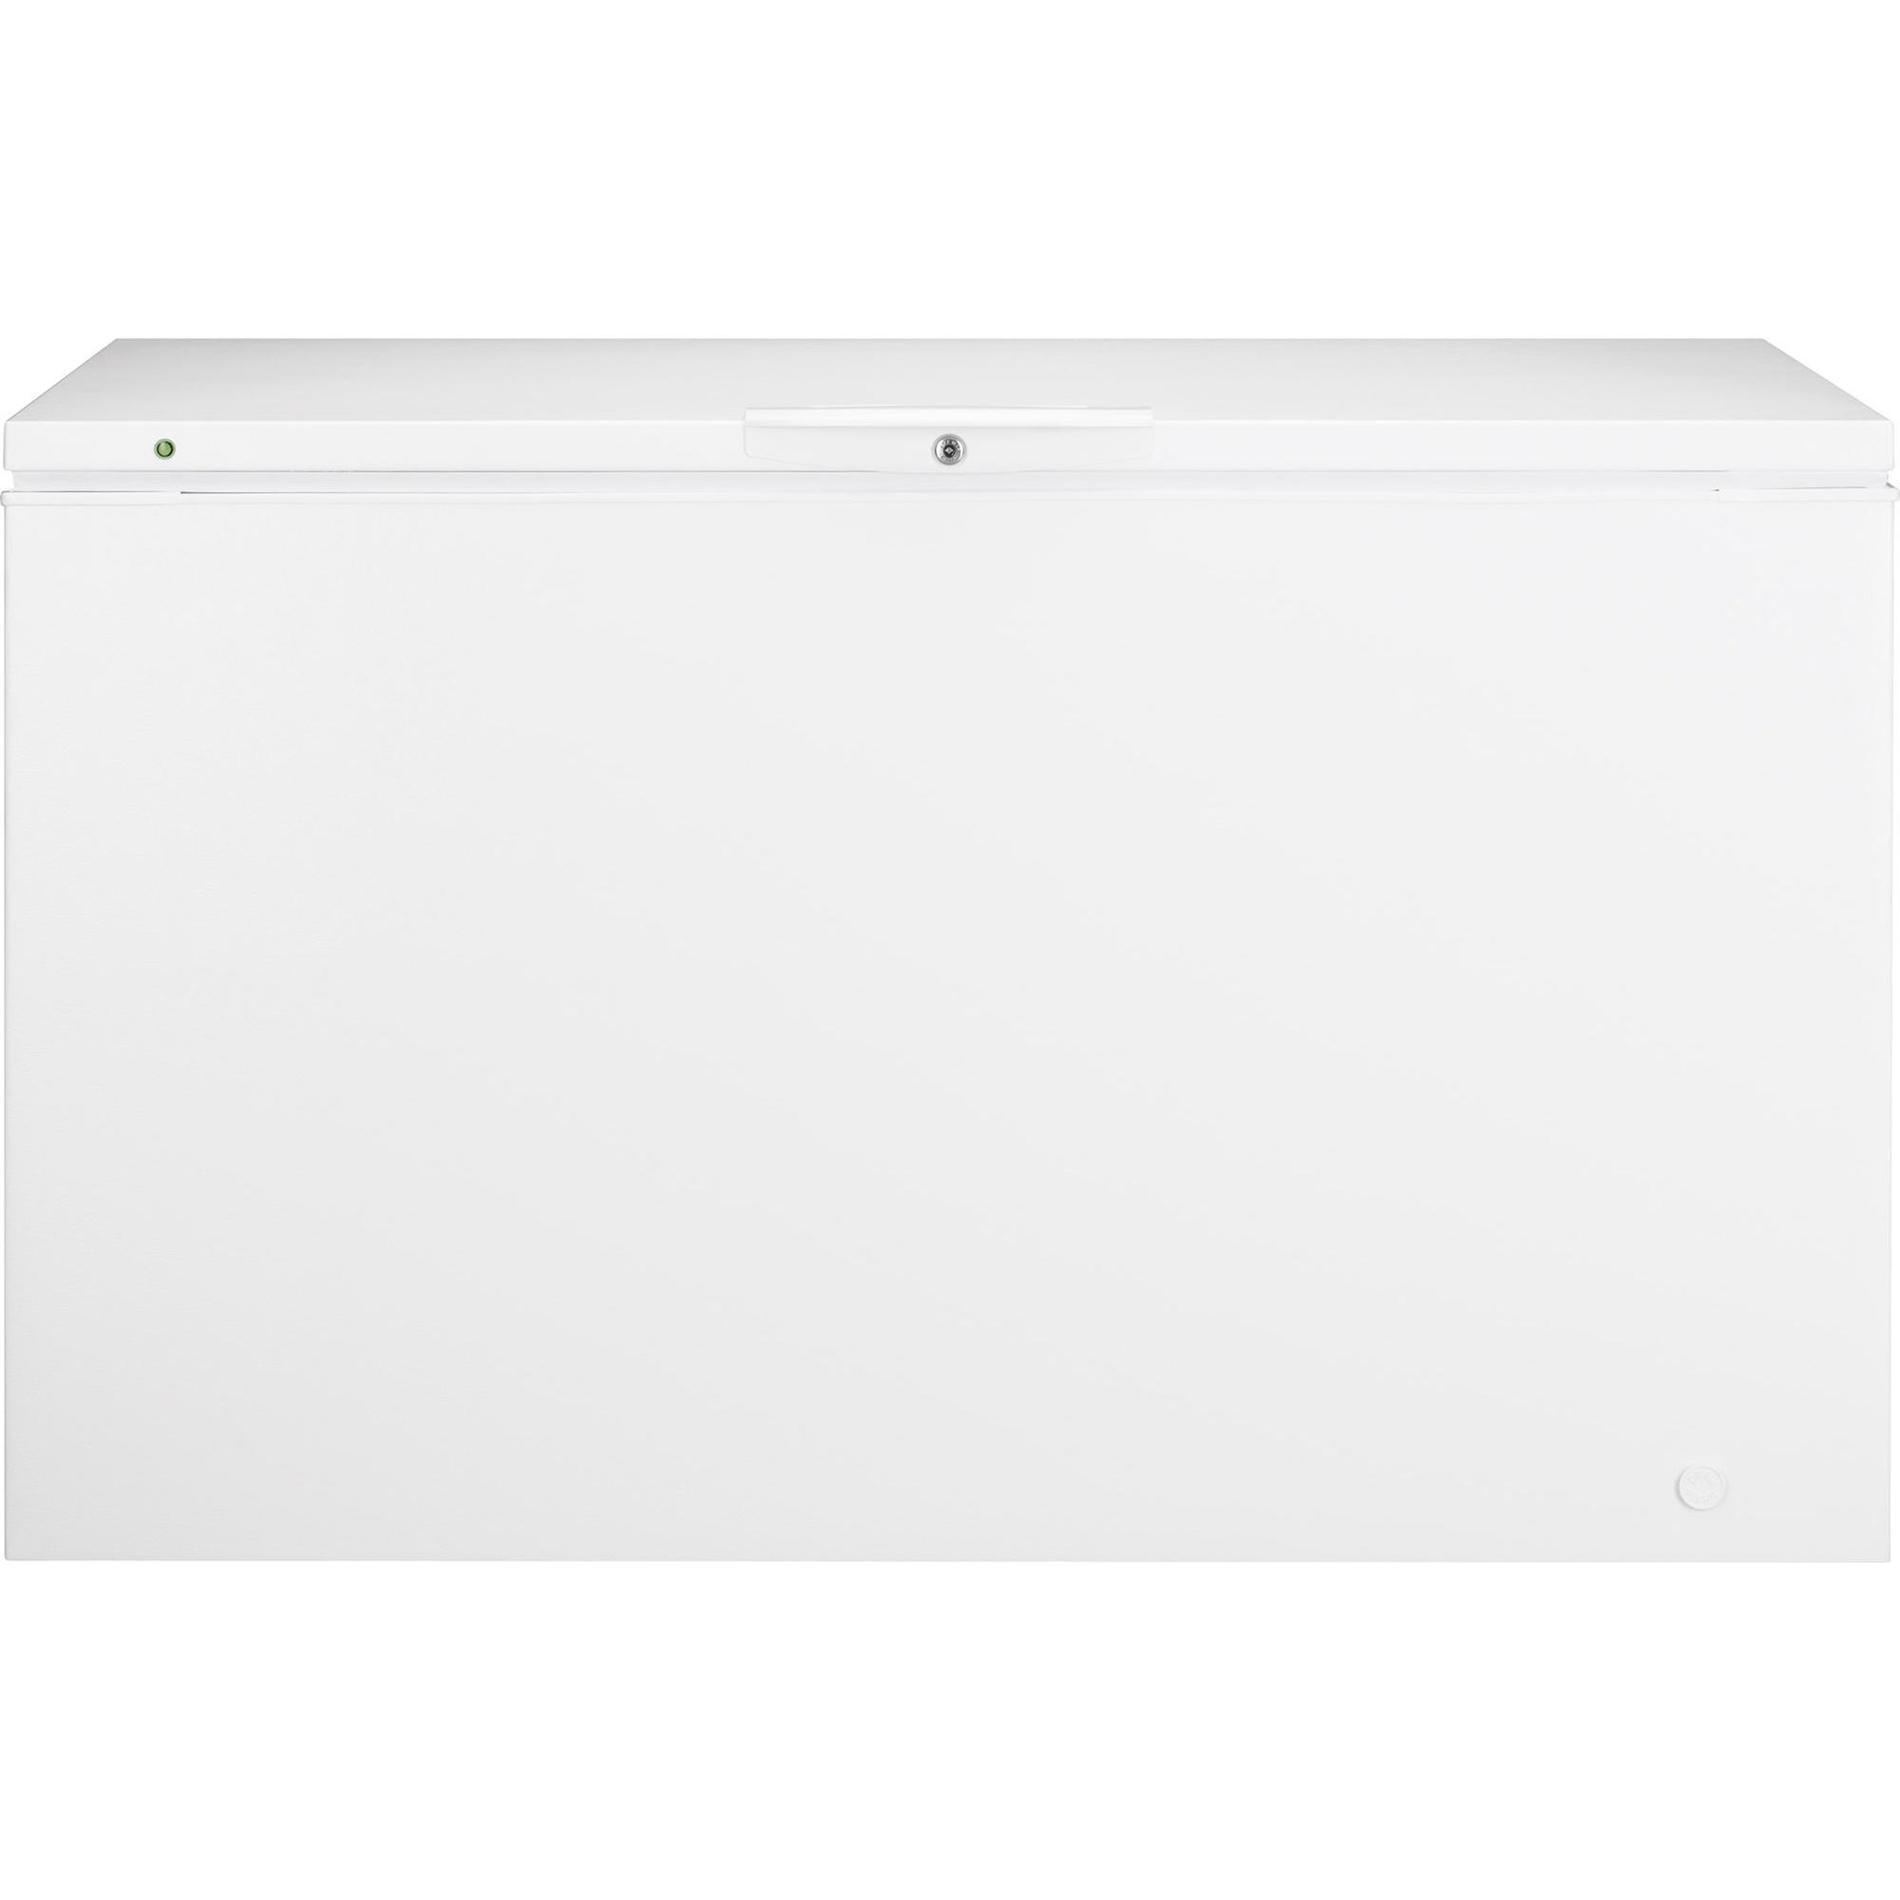 12512-15-6-cu-ft-Chest-Freezer-White